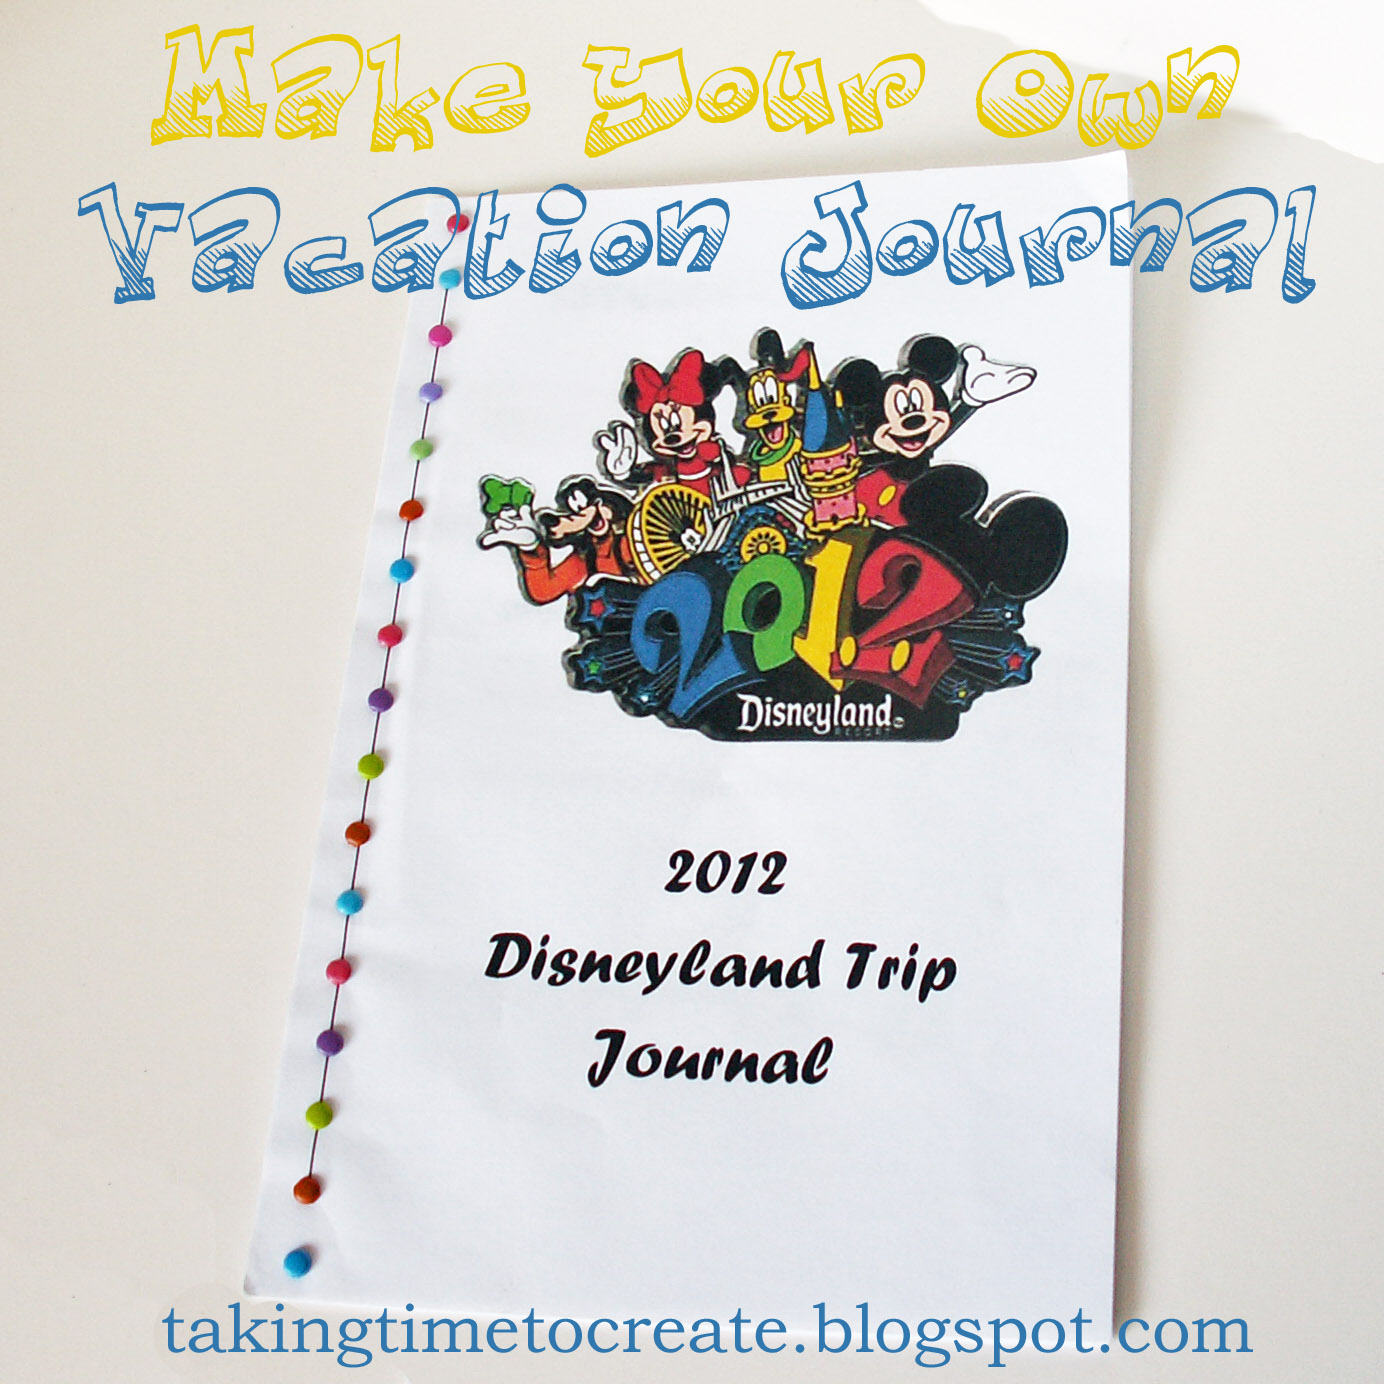 Taking Time To Create: Make Your Own Vacation Journal